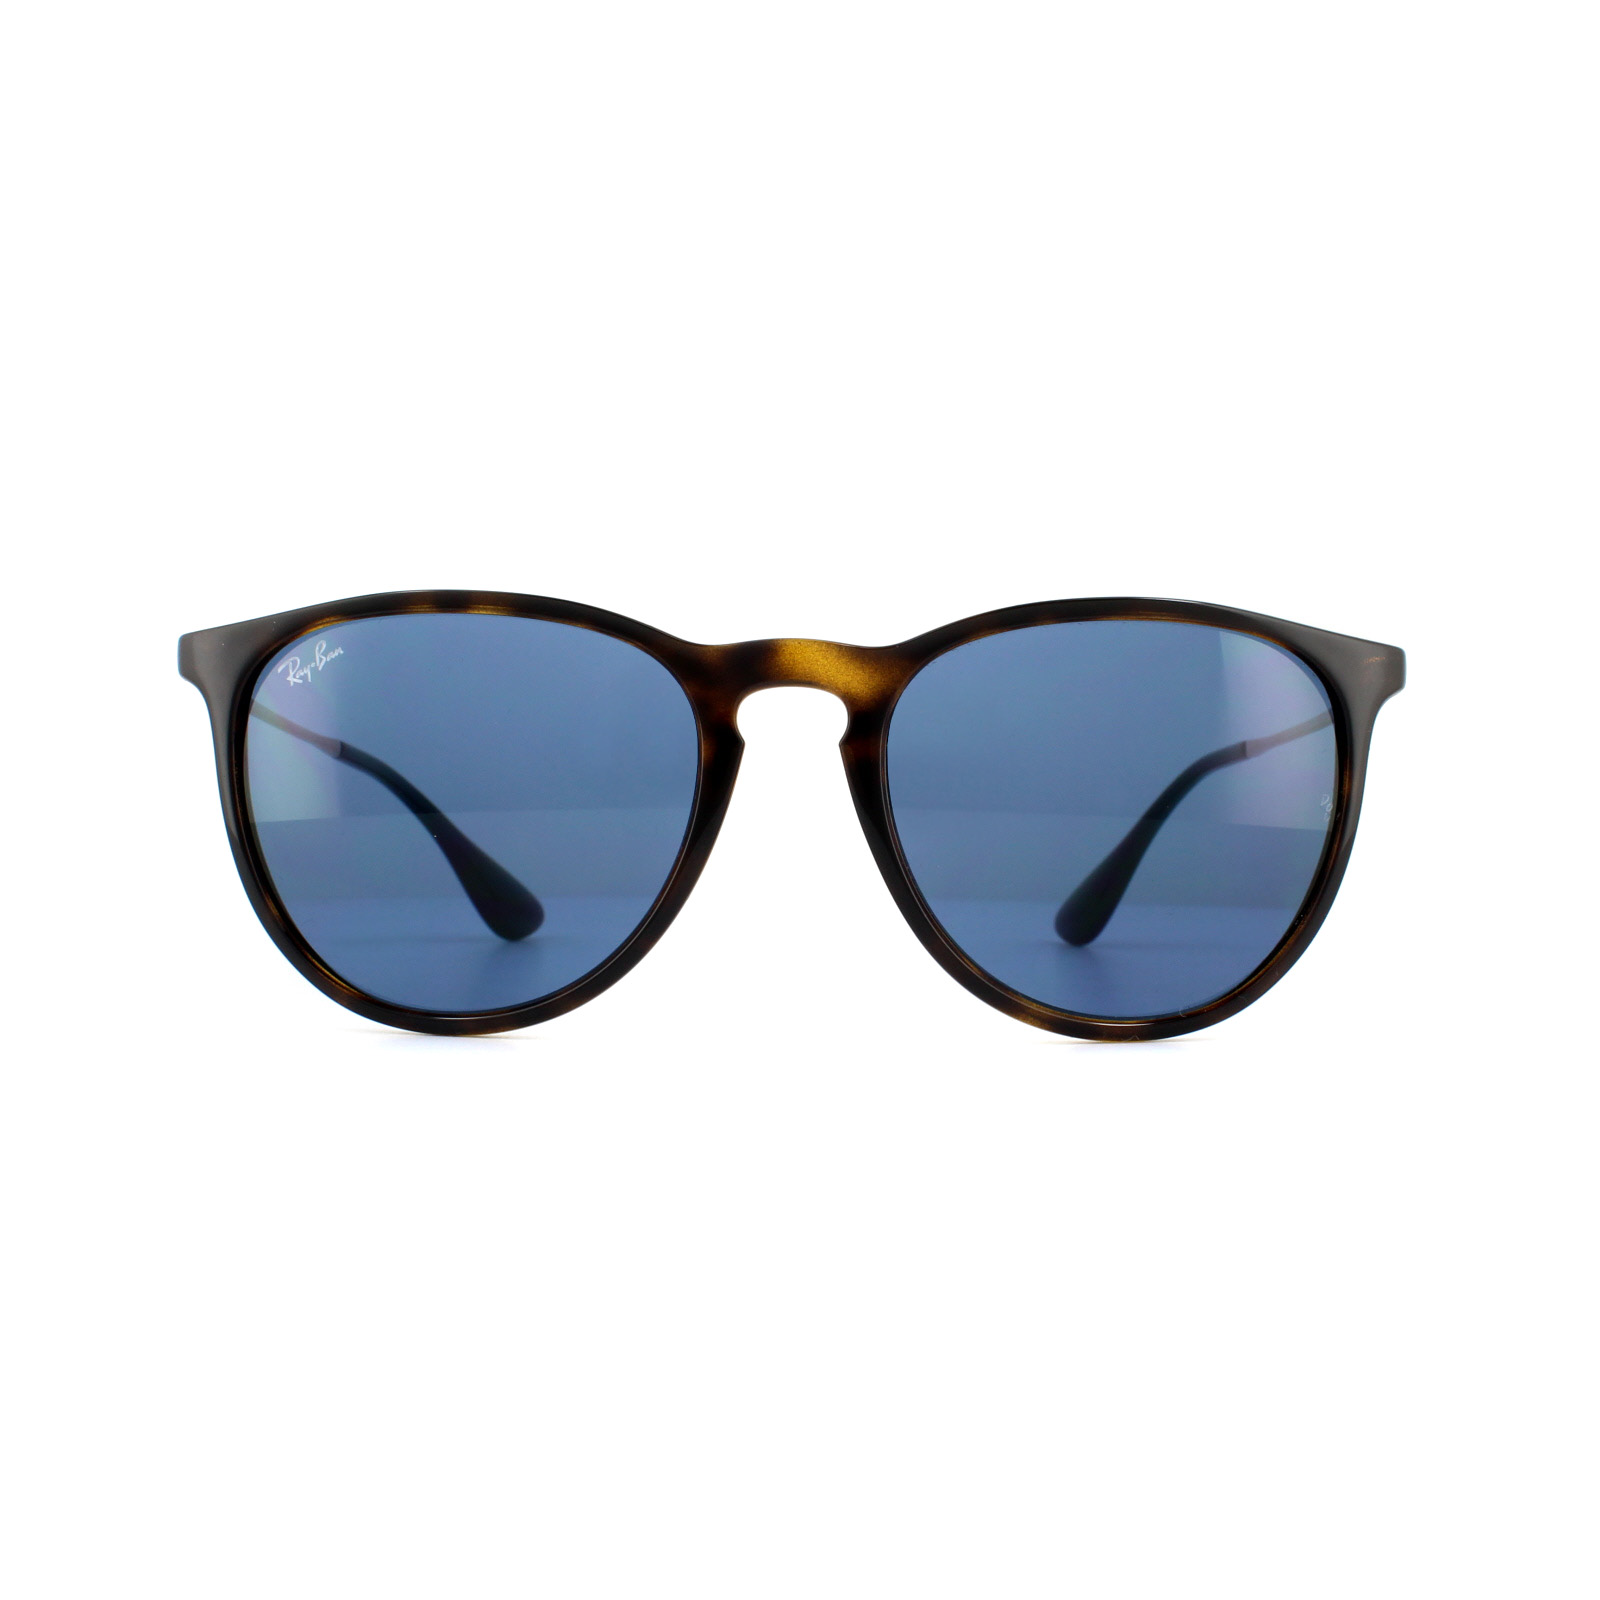 e4fe042b1d8 Cheap Ray-Ban Erika 4171 Sunglasses - Discounted Sunglasses